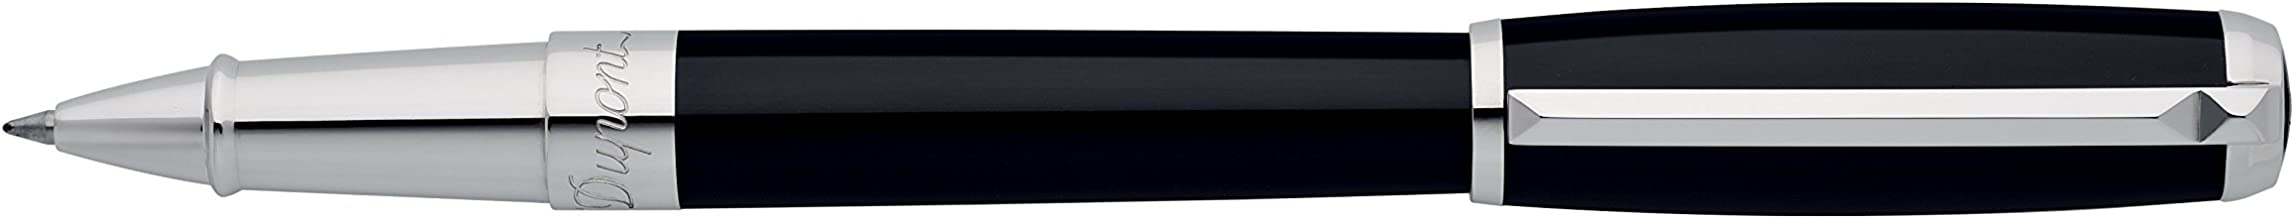 S.T. Dupont Elysee RB/BP Pen - Black Lacquer/Palladium 412674